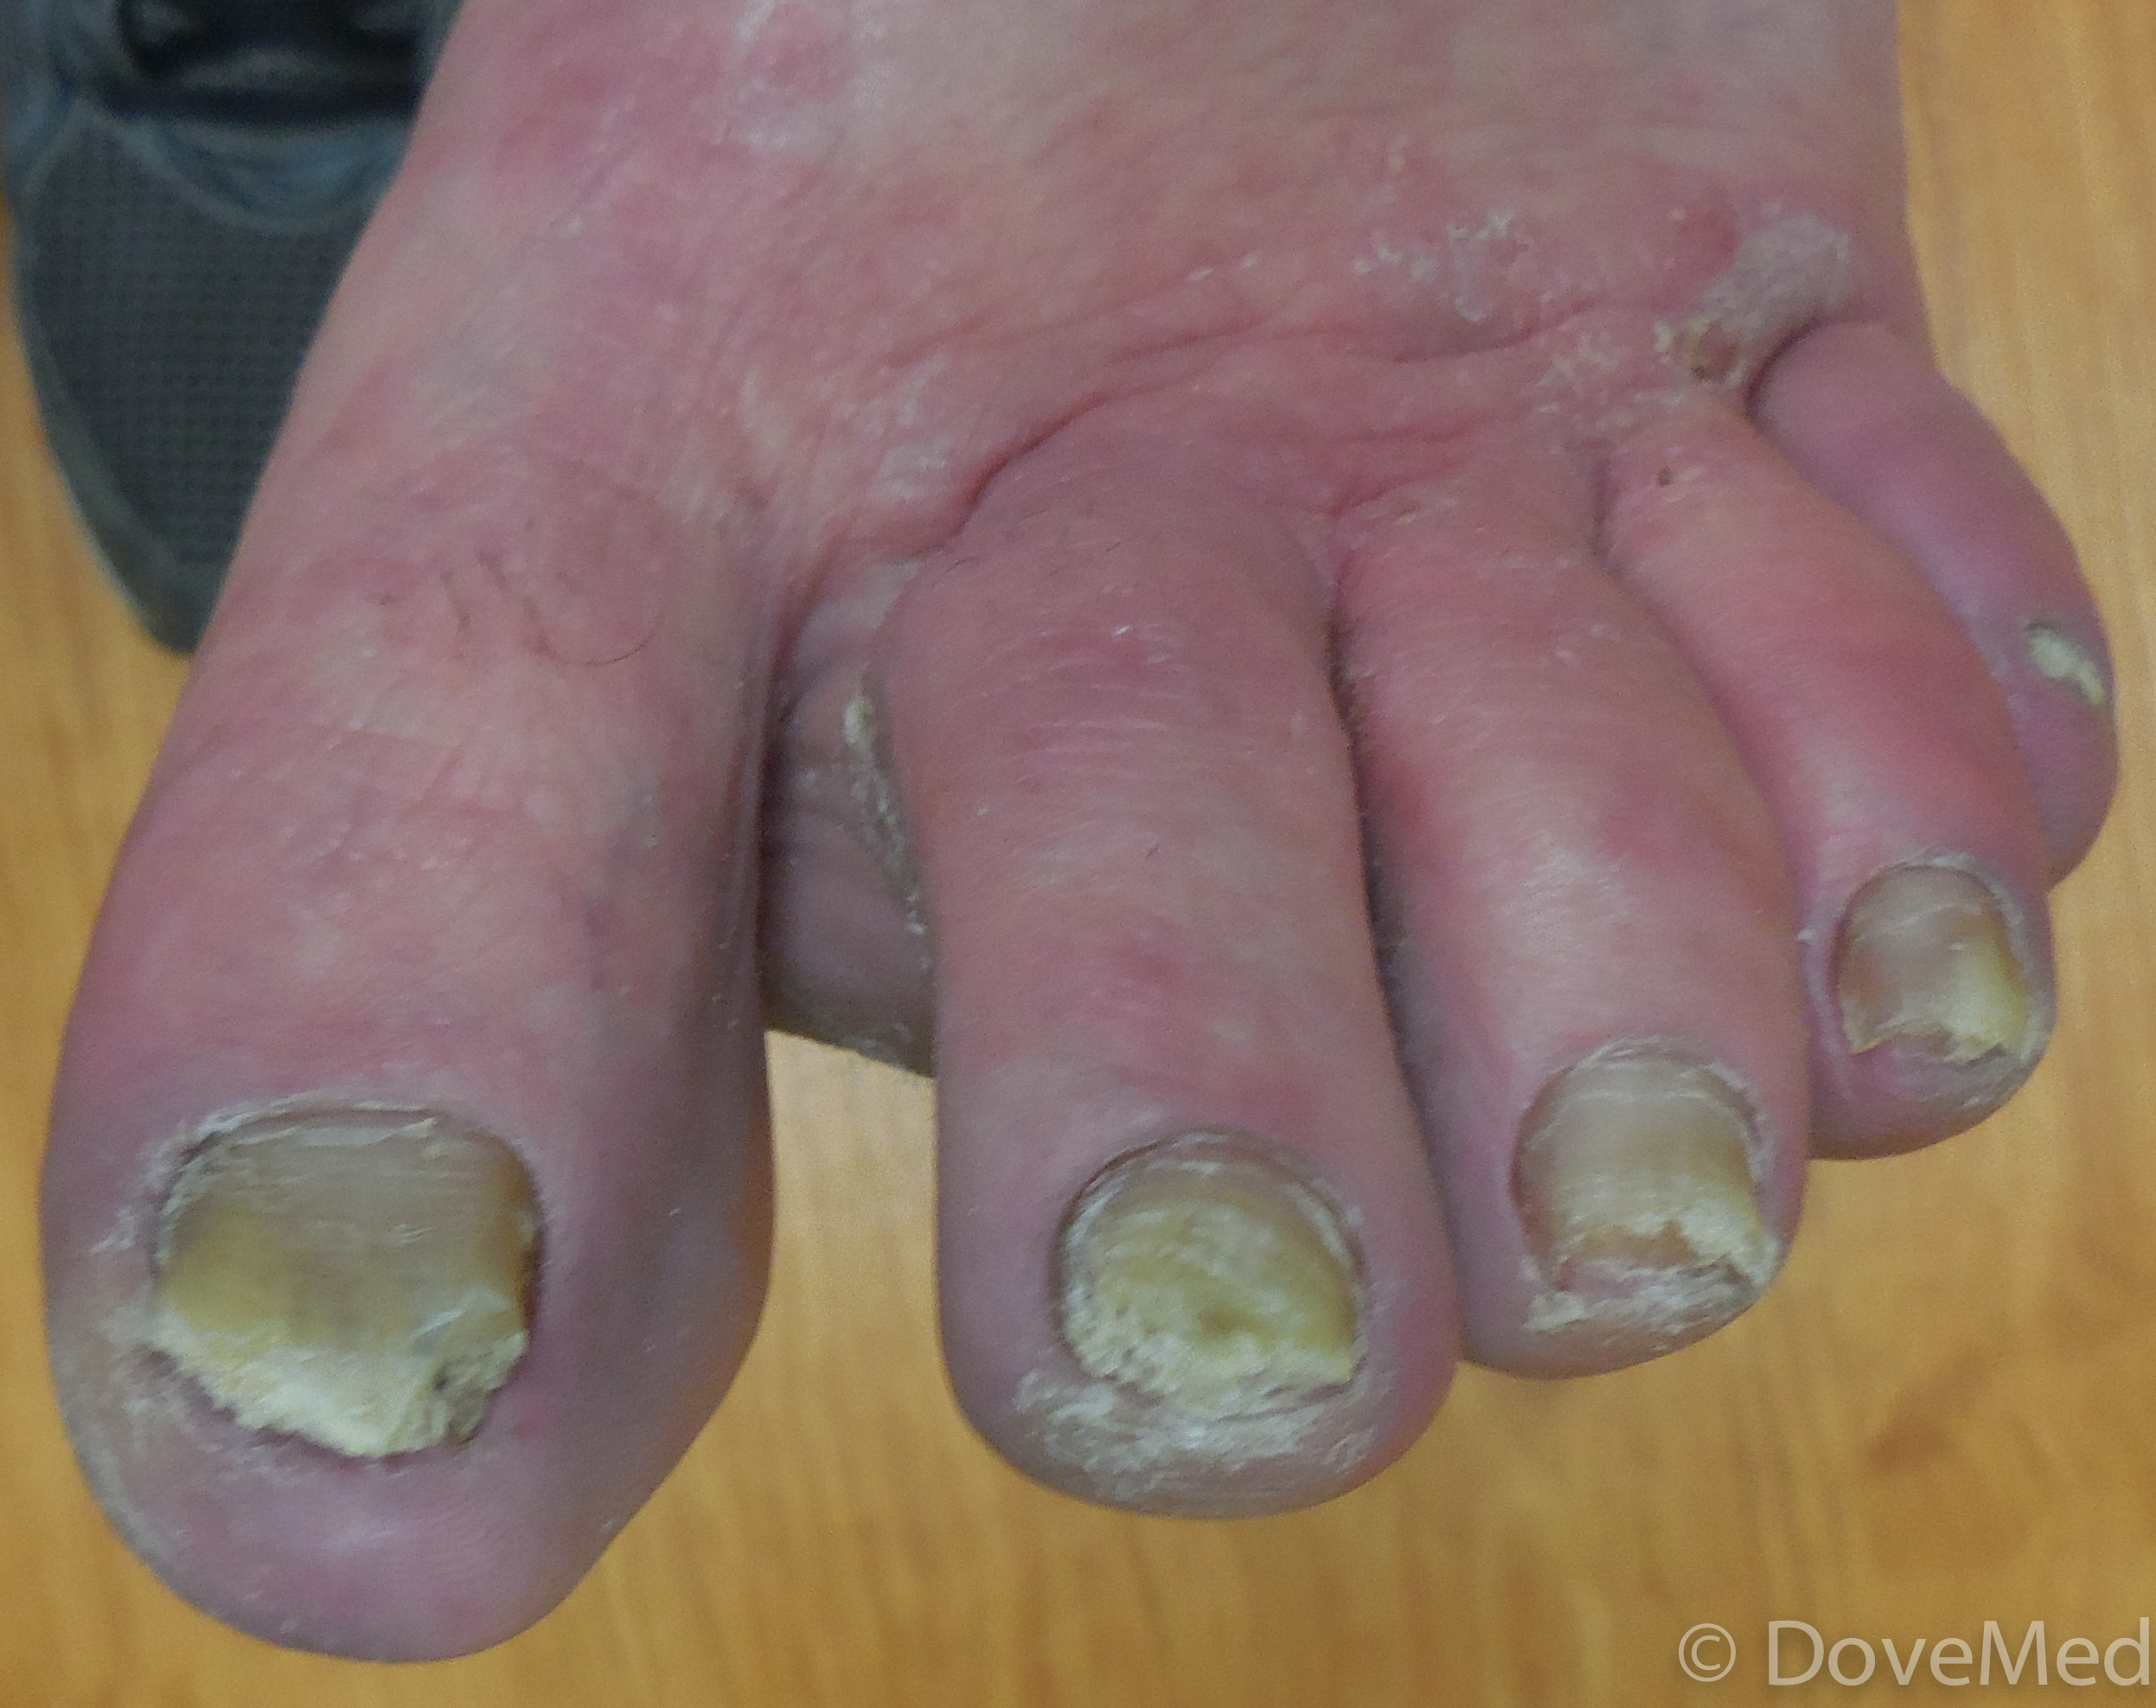 Fungal Infection Of Nail